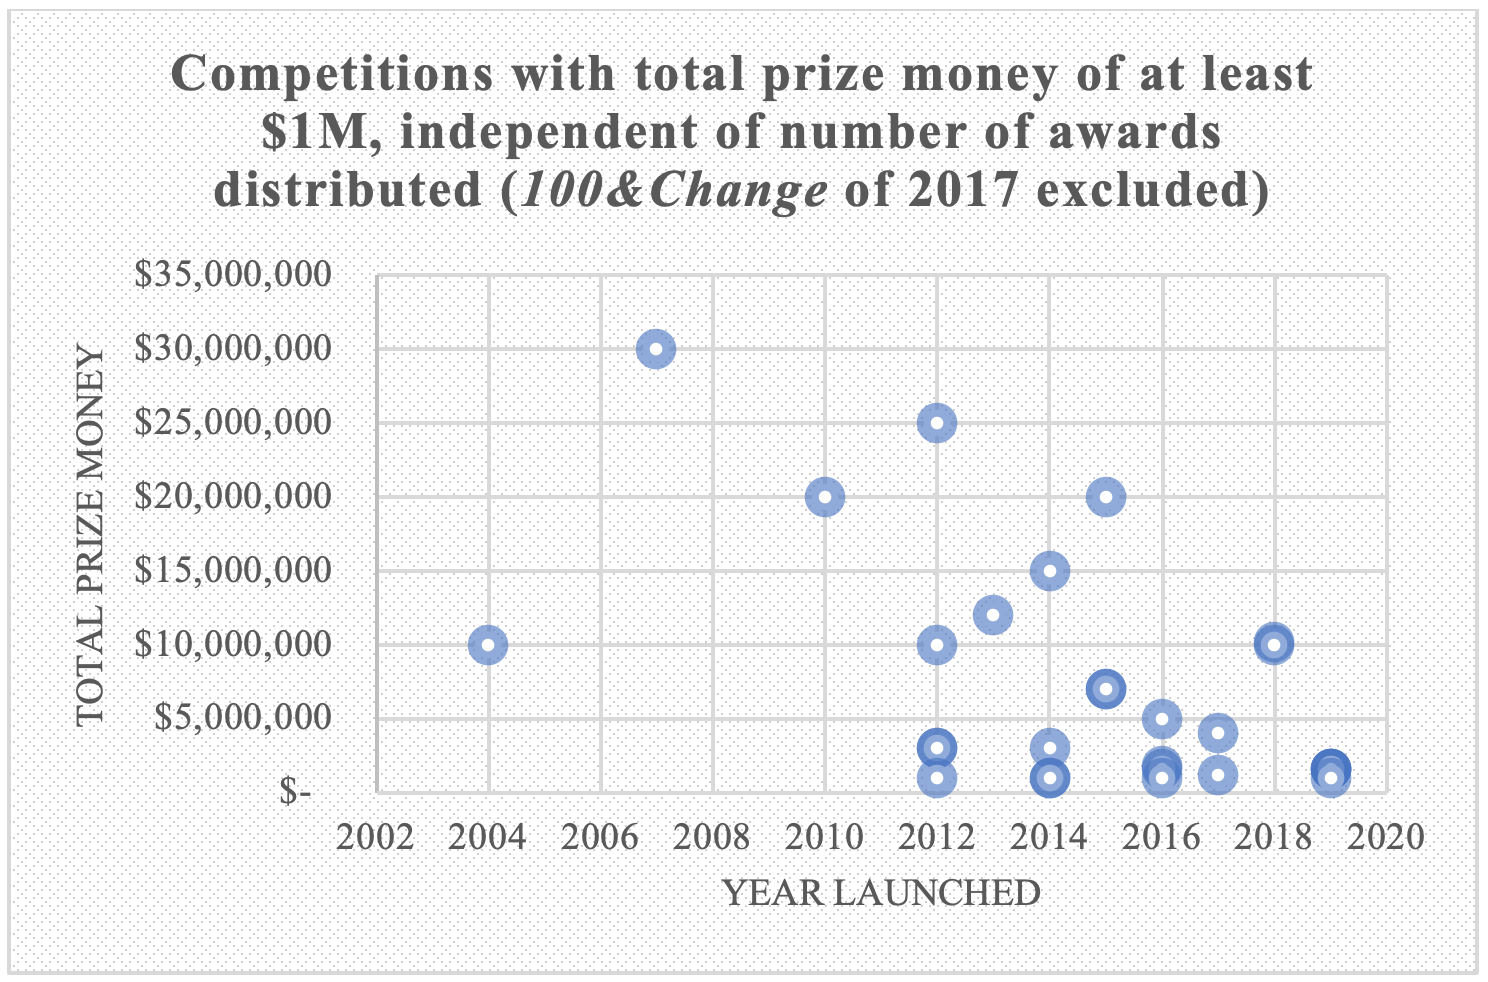 Competitions with total prize money of at least $1M, independent of number of awards distributed (100&Change of 2017 excluded)